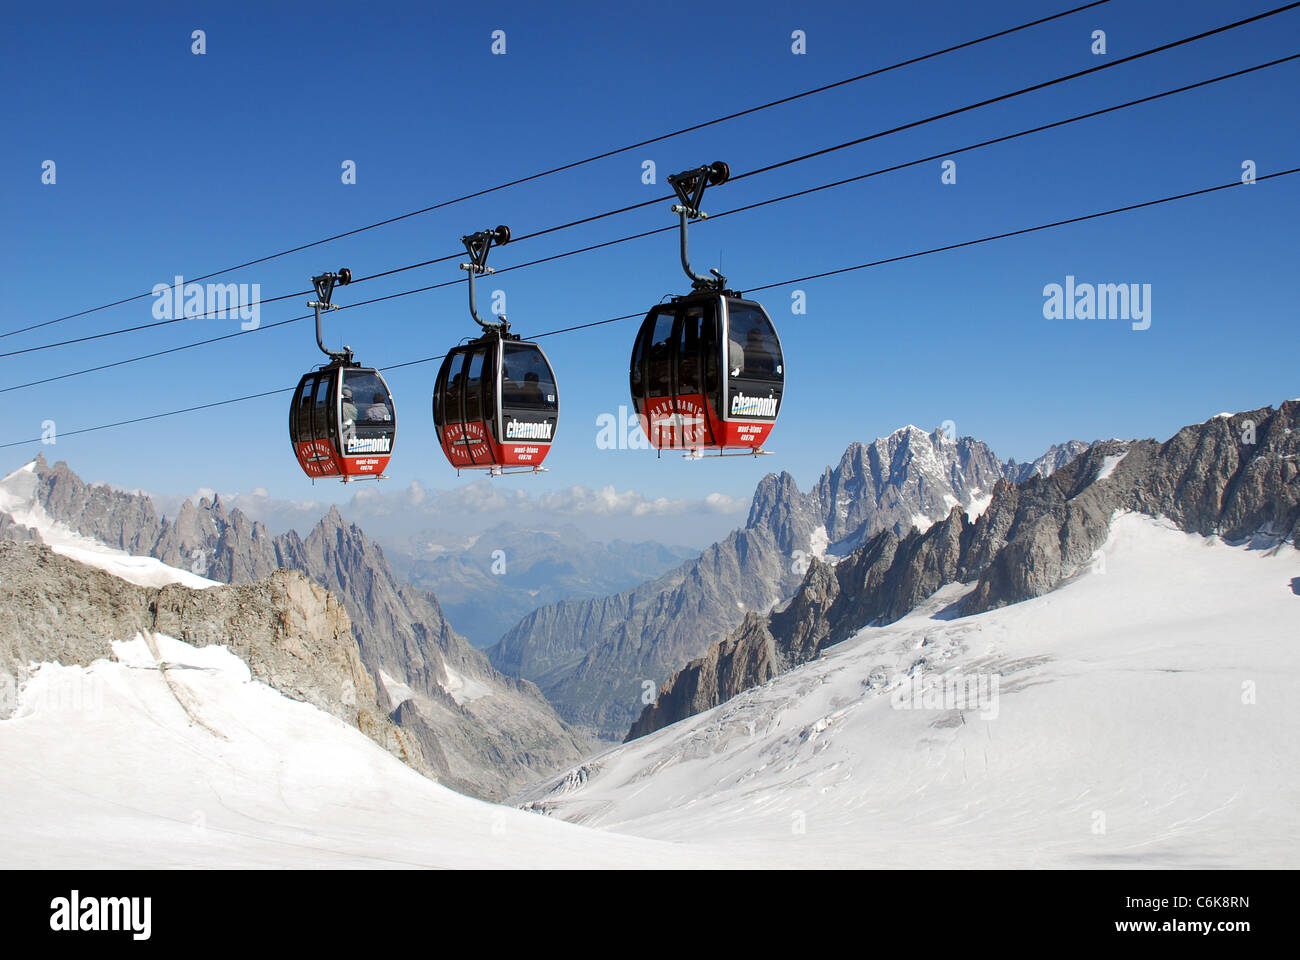 cable cars cross the Mont blanc glacier on route from the Helbronner telepherique station on the way to Aiguille - Stock Image